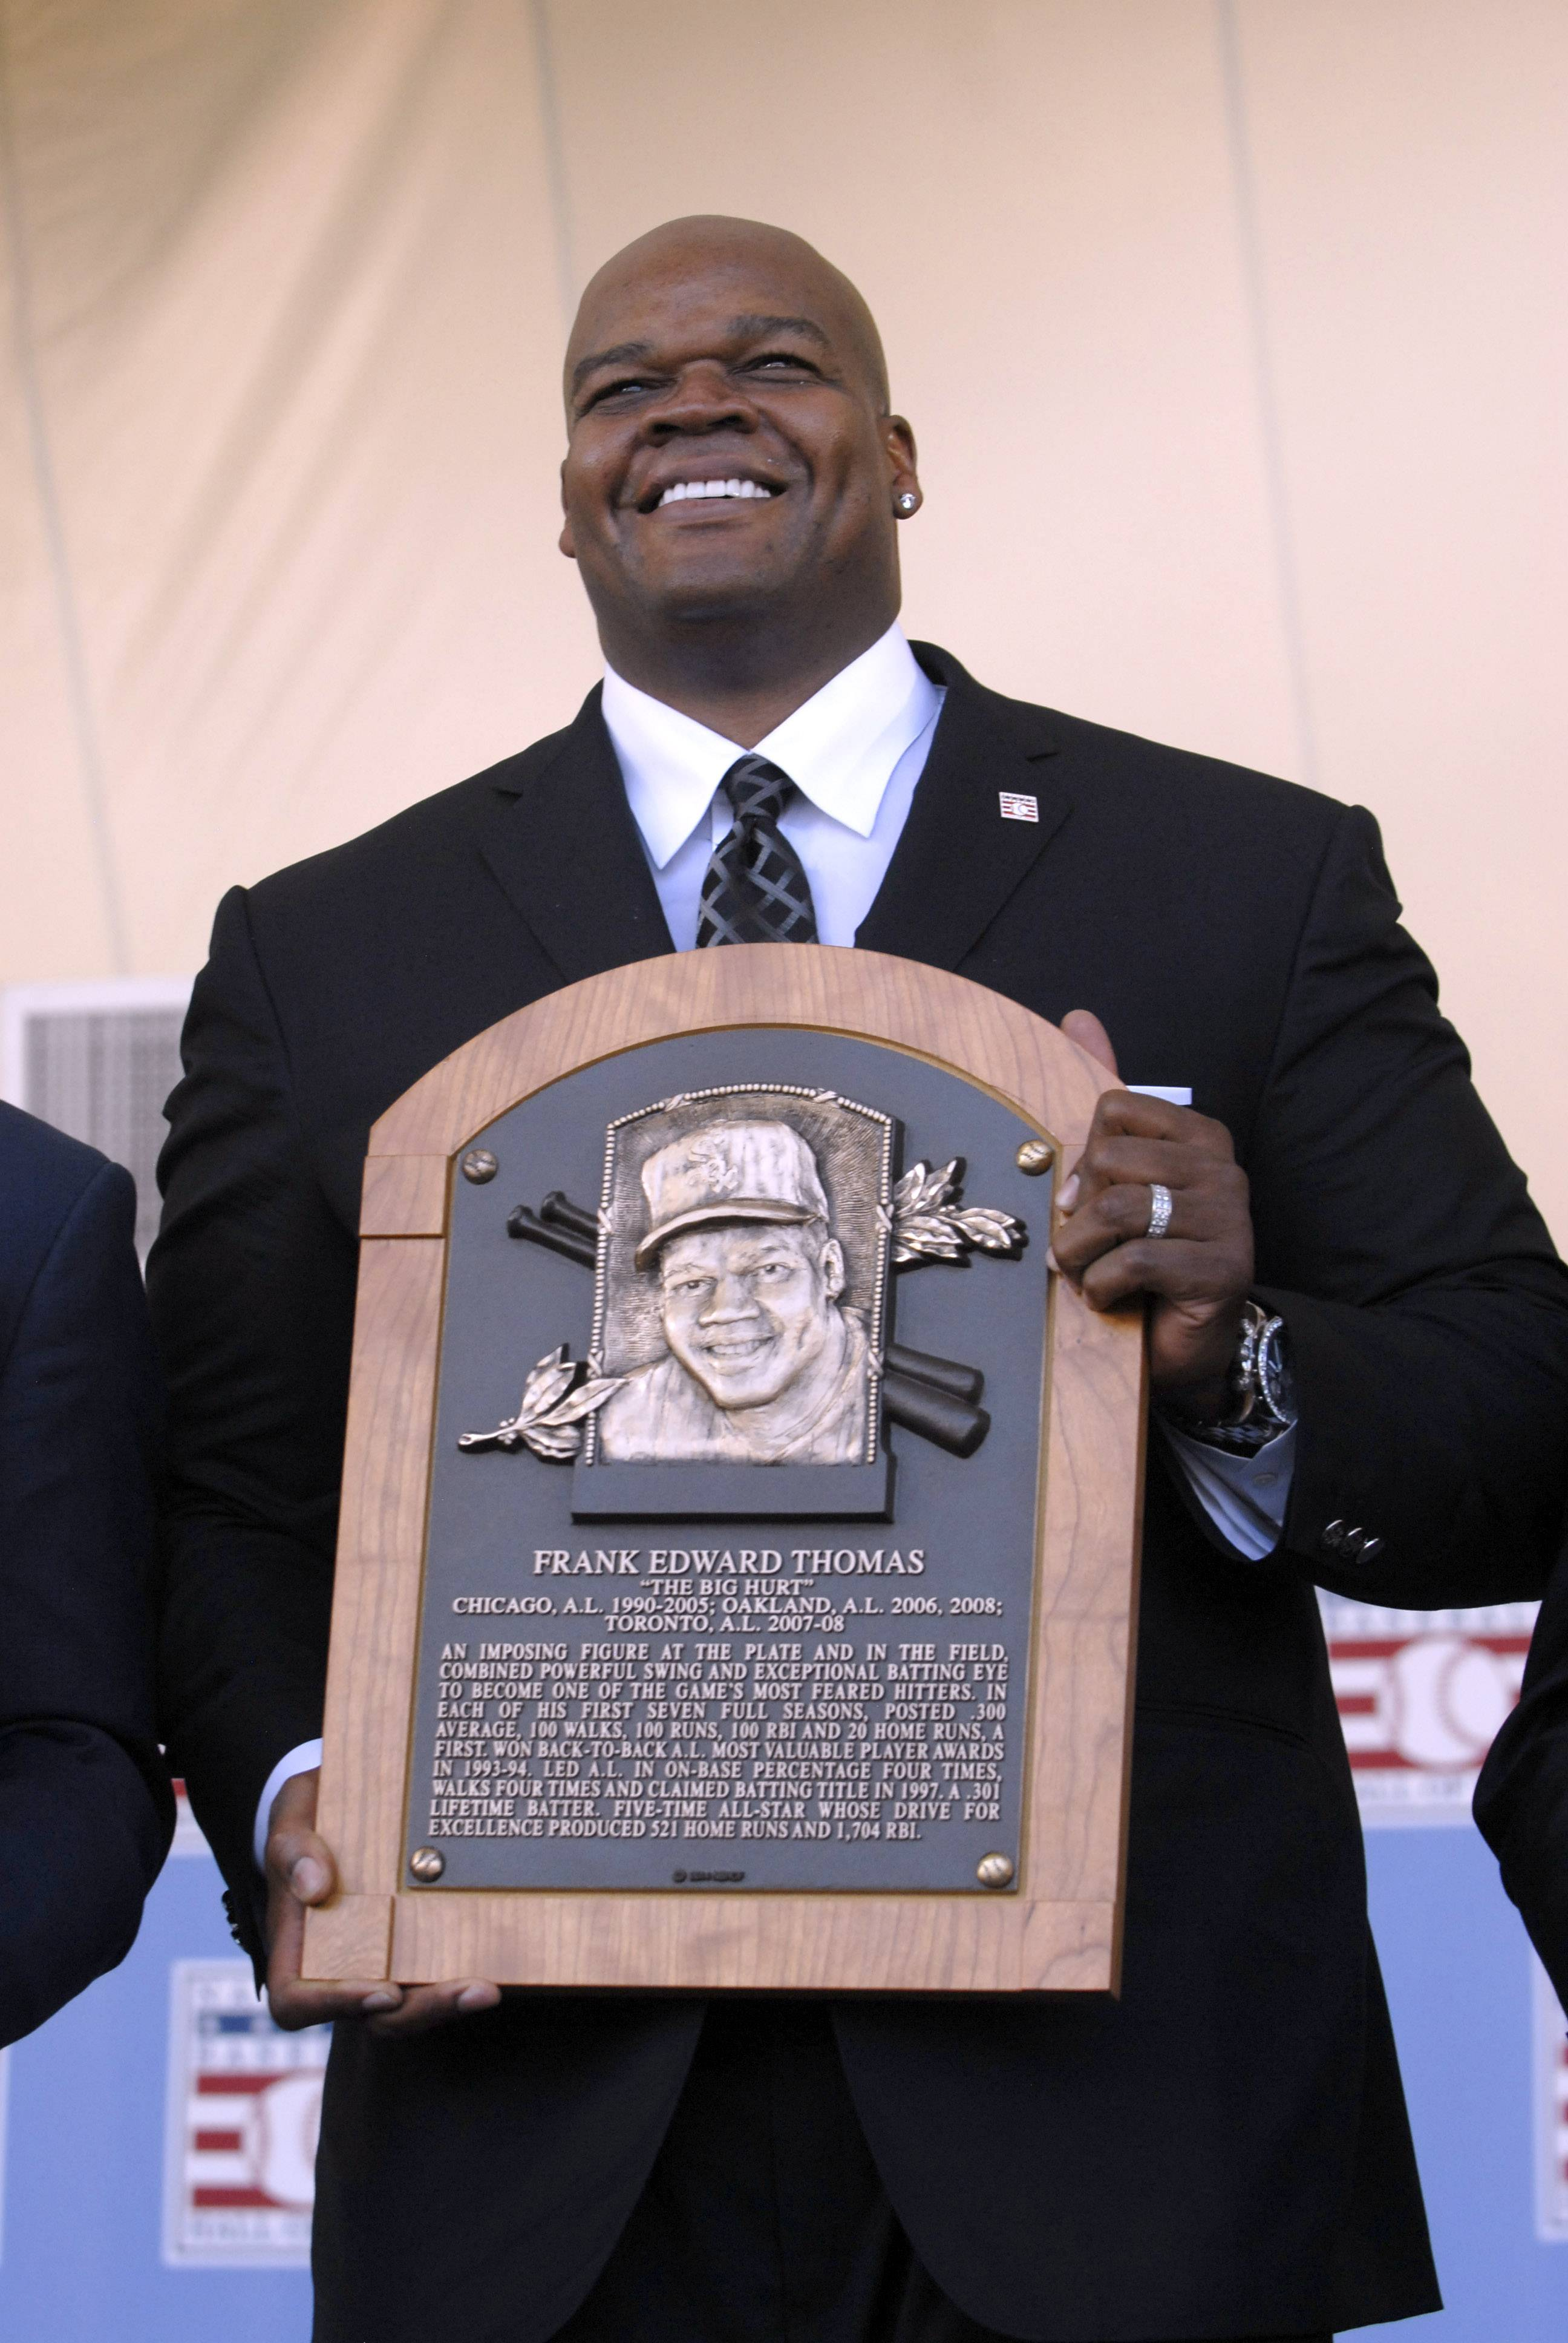 Hall of Famer Bob Gibson had words of praise for newly enshrined Frank Thomas, here holding his plaque during Sunday's induction ceremony, saying he wonders how he would have pitched to the White Sox great.